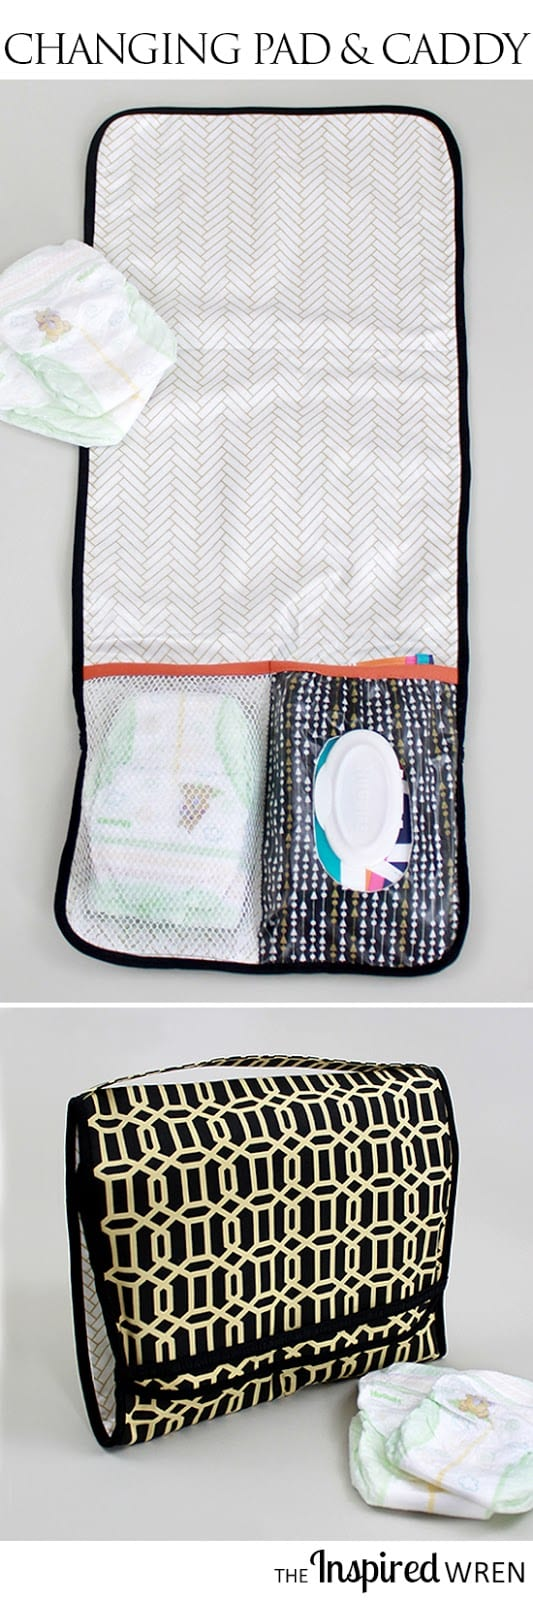 Diaper caddy tutorial